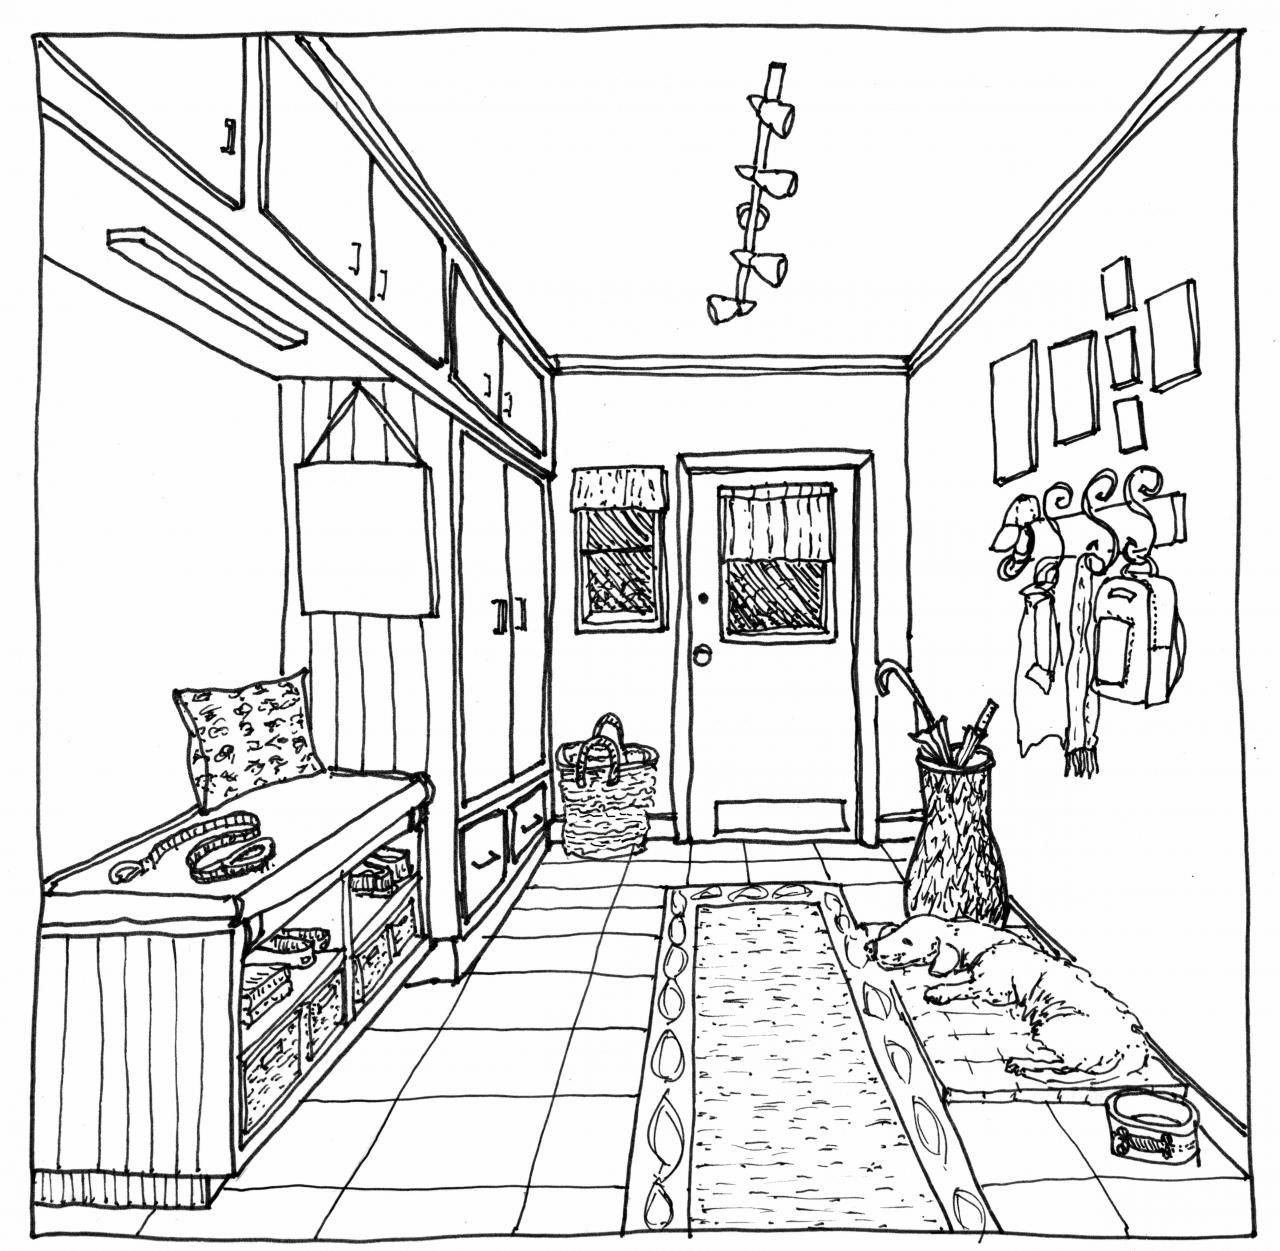 Home Decorating Games For Adults Homedecorationproducts Post 9612777250 Perspective Drawing Lessons Perspective Room Drawing Interior